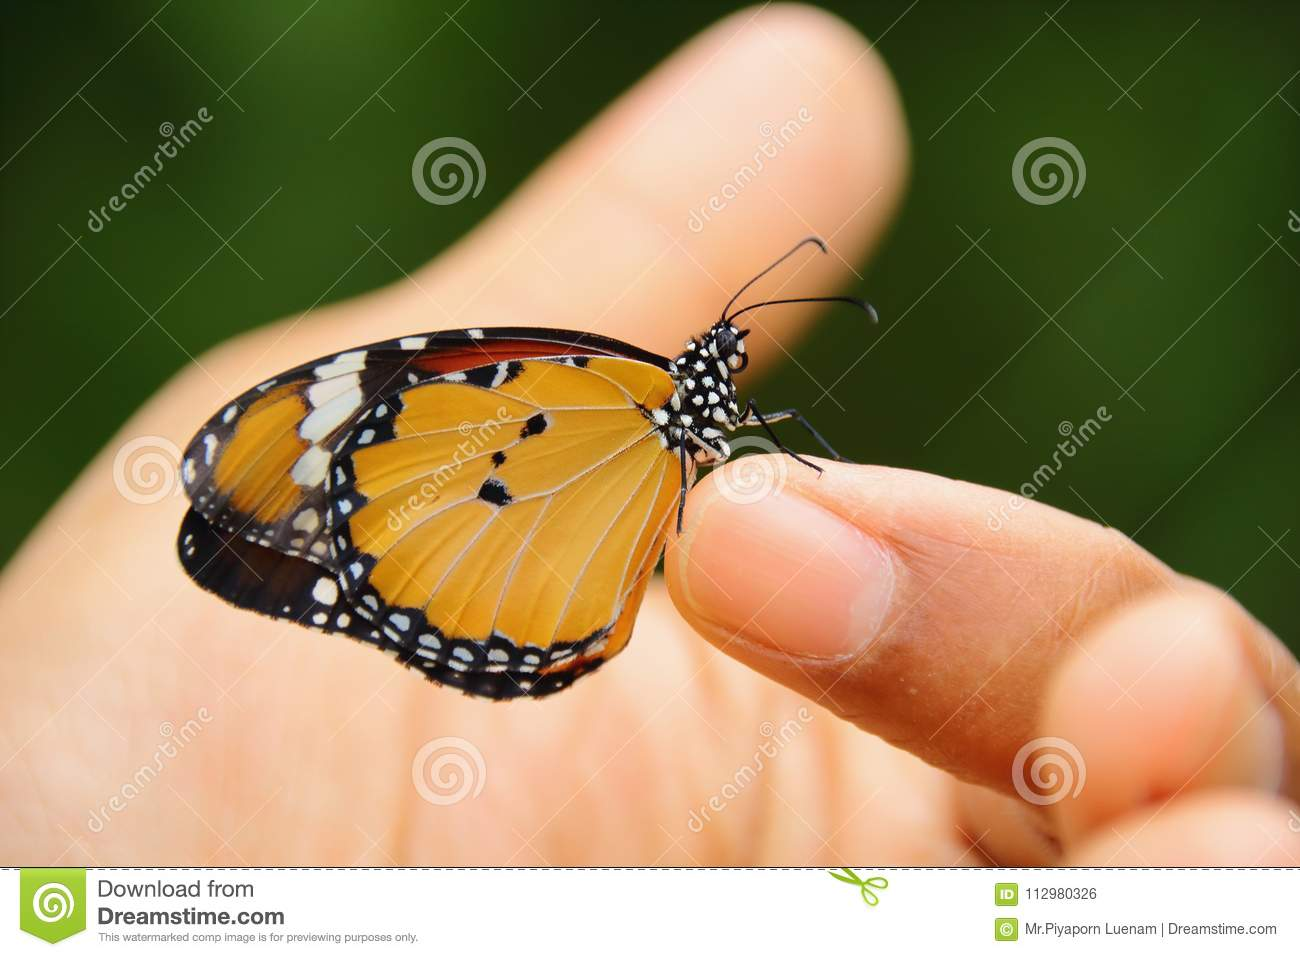 Butterfly on the finger. insects,